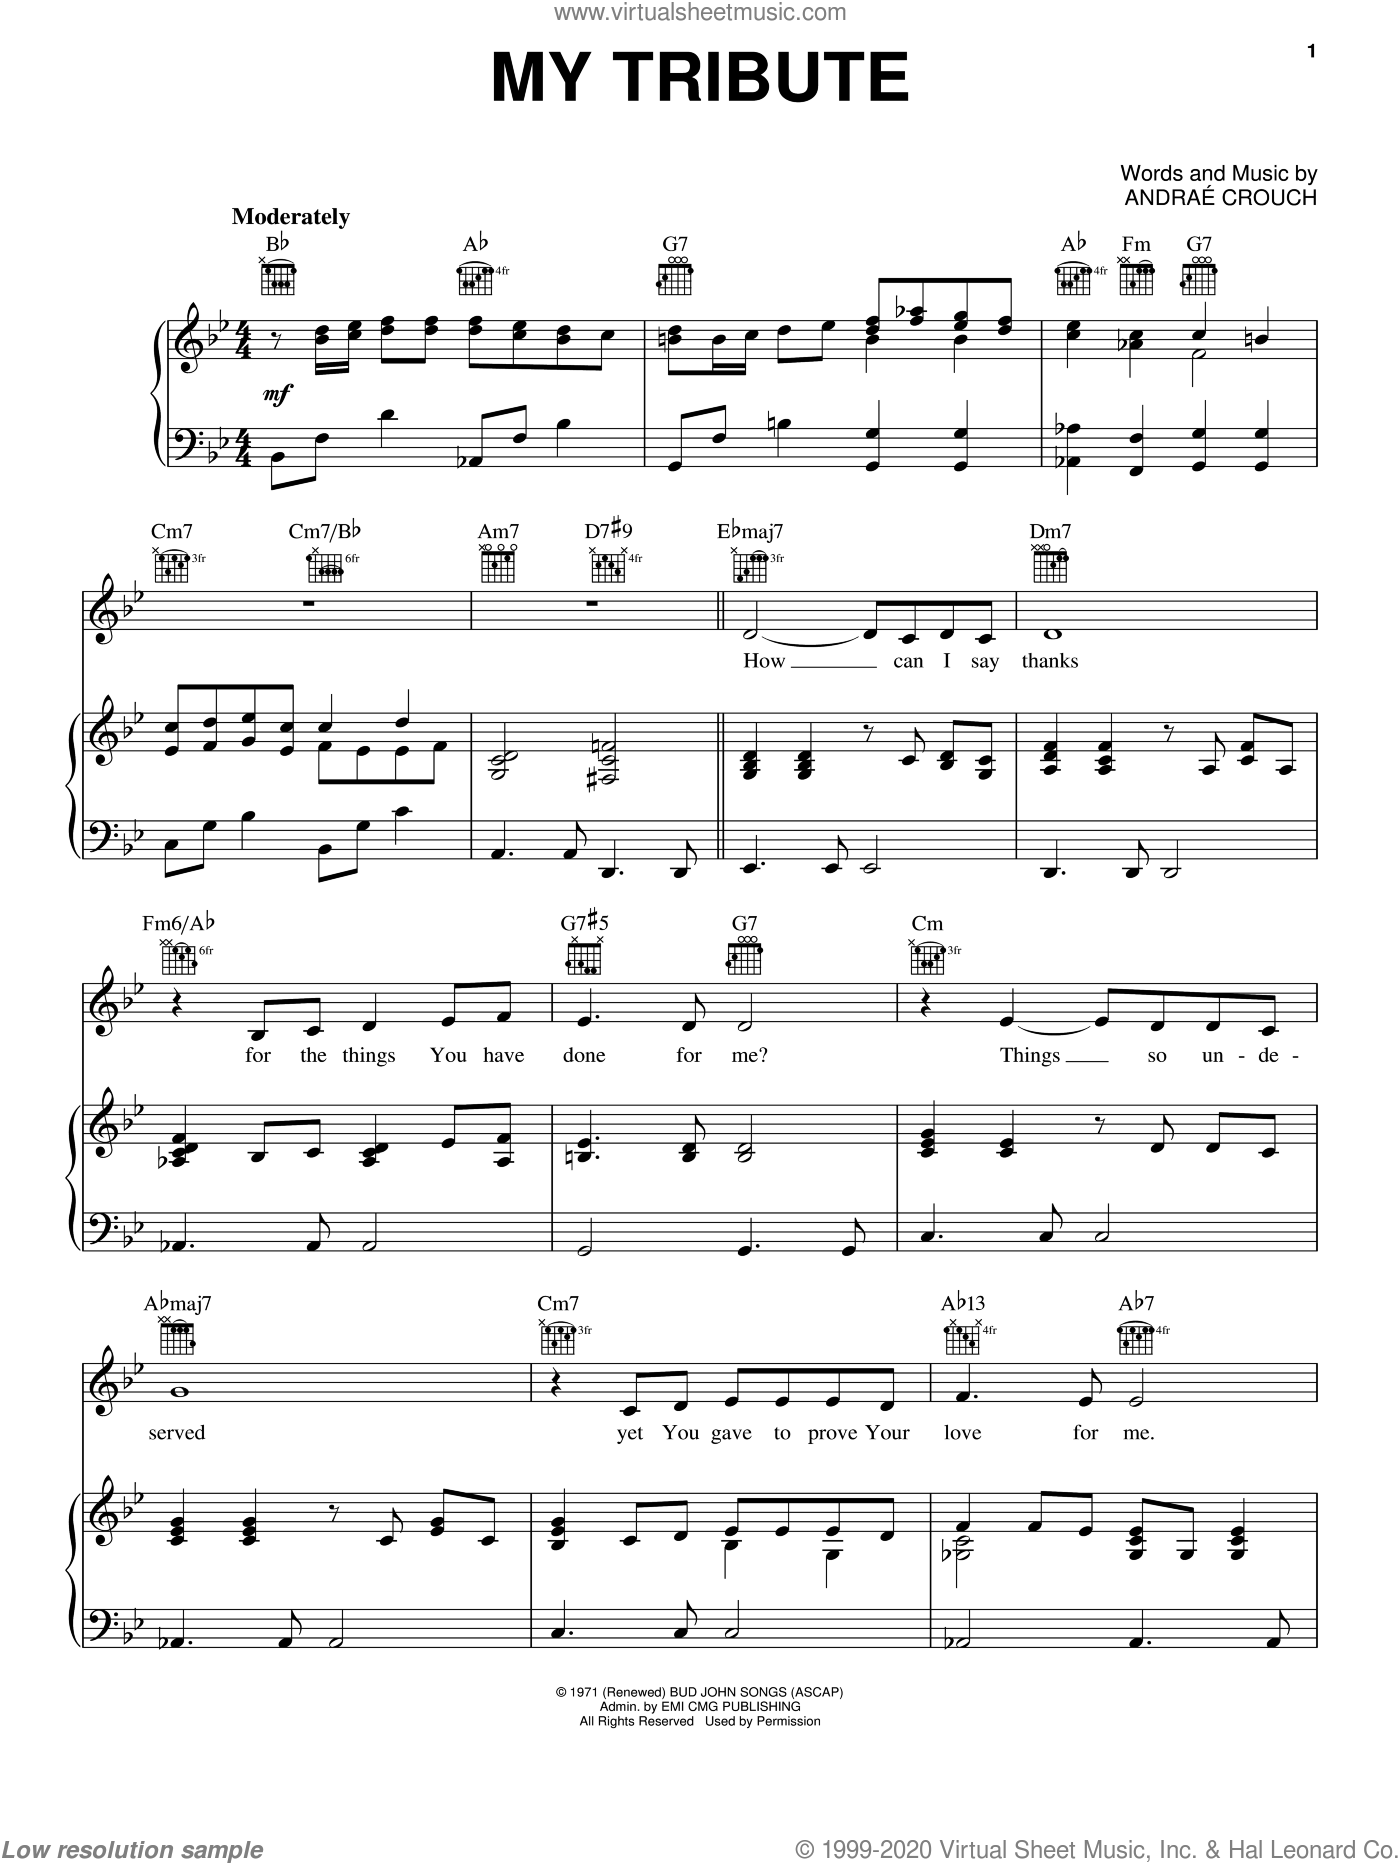 My Tribute sheet music for voice, piano or guitar by Andrae Crouch, intermediate skill level